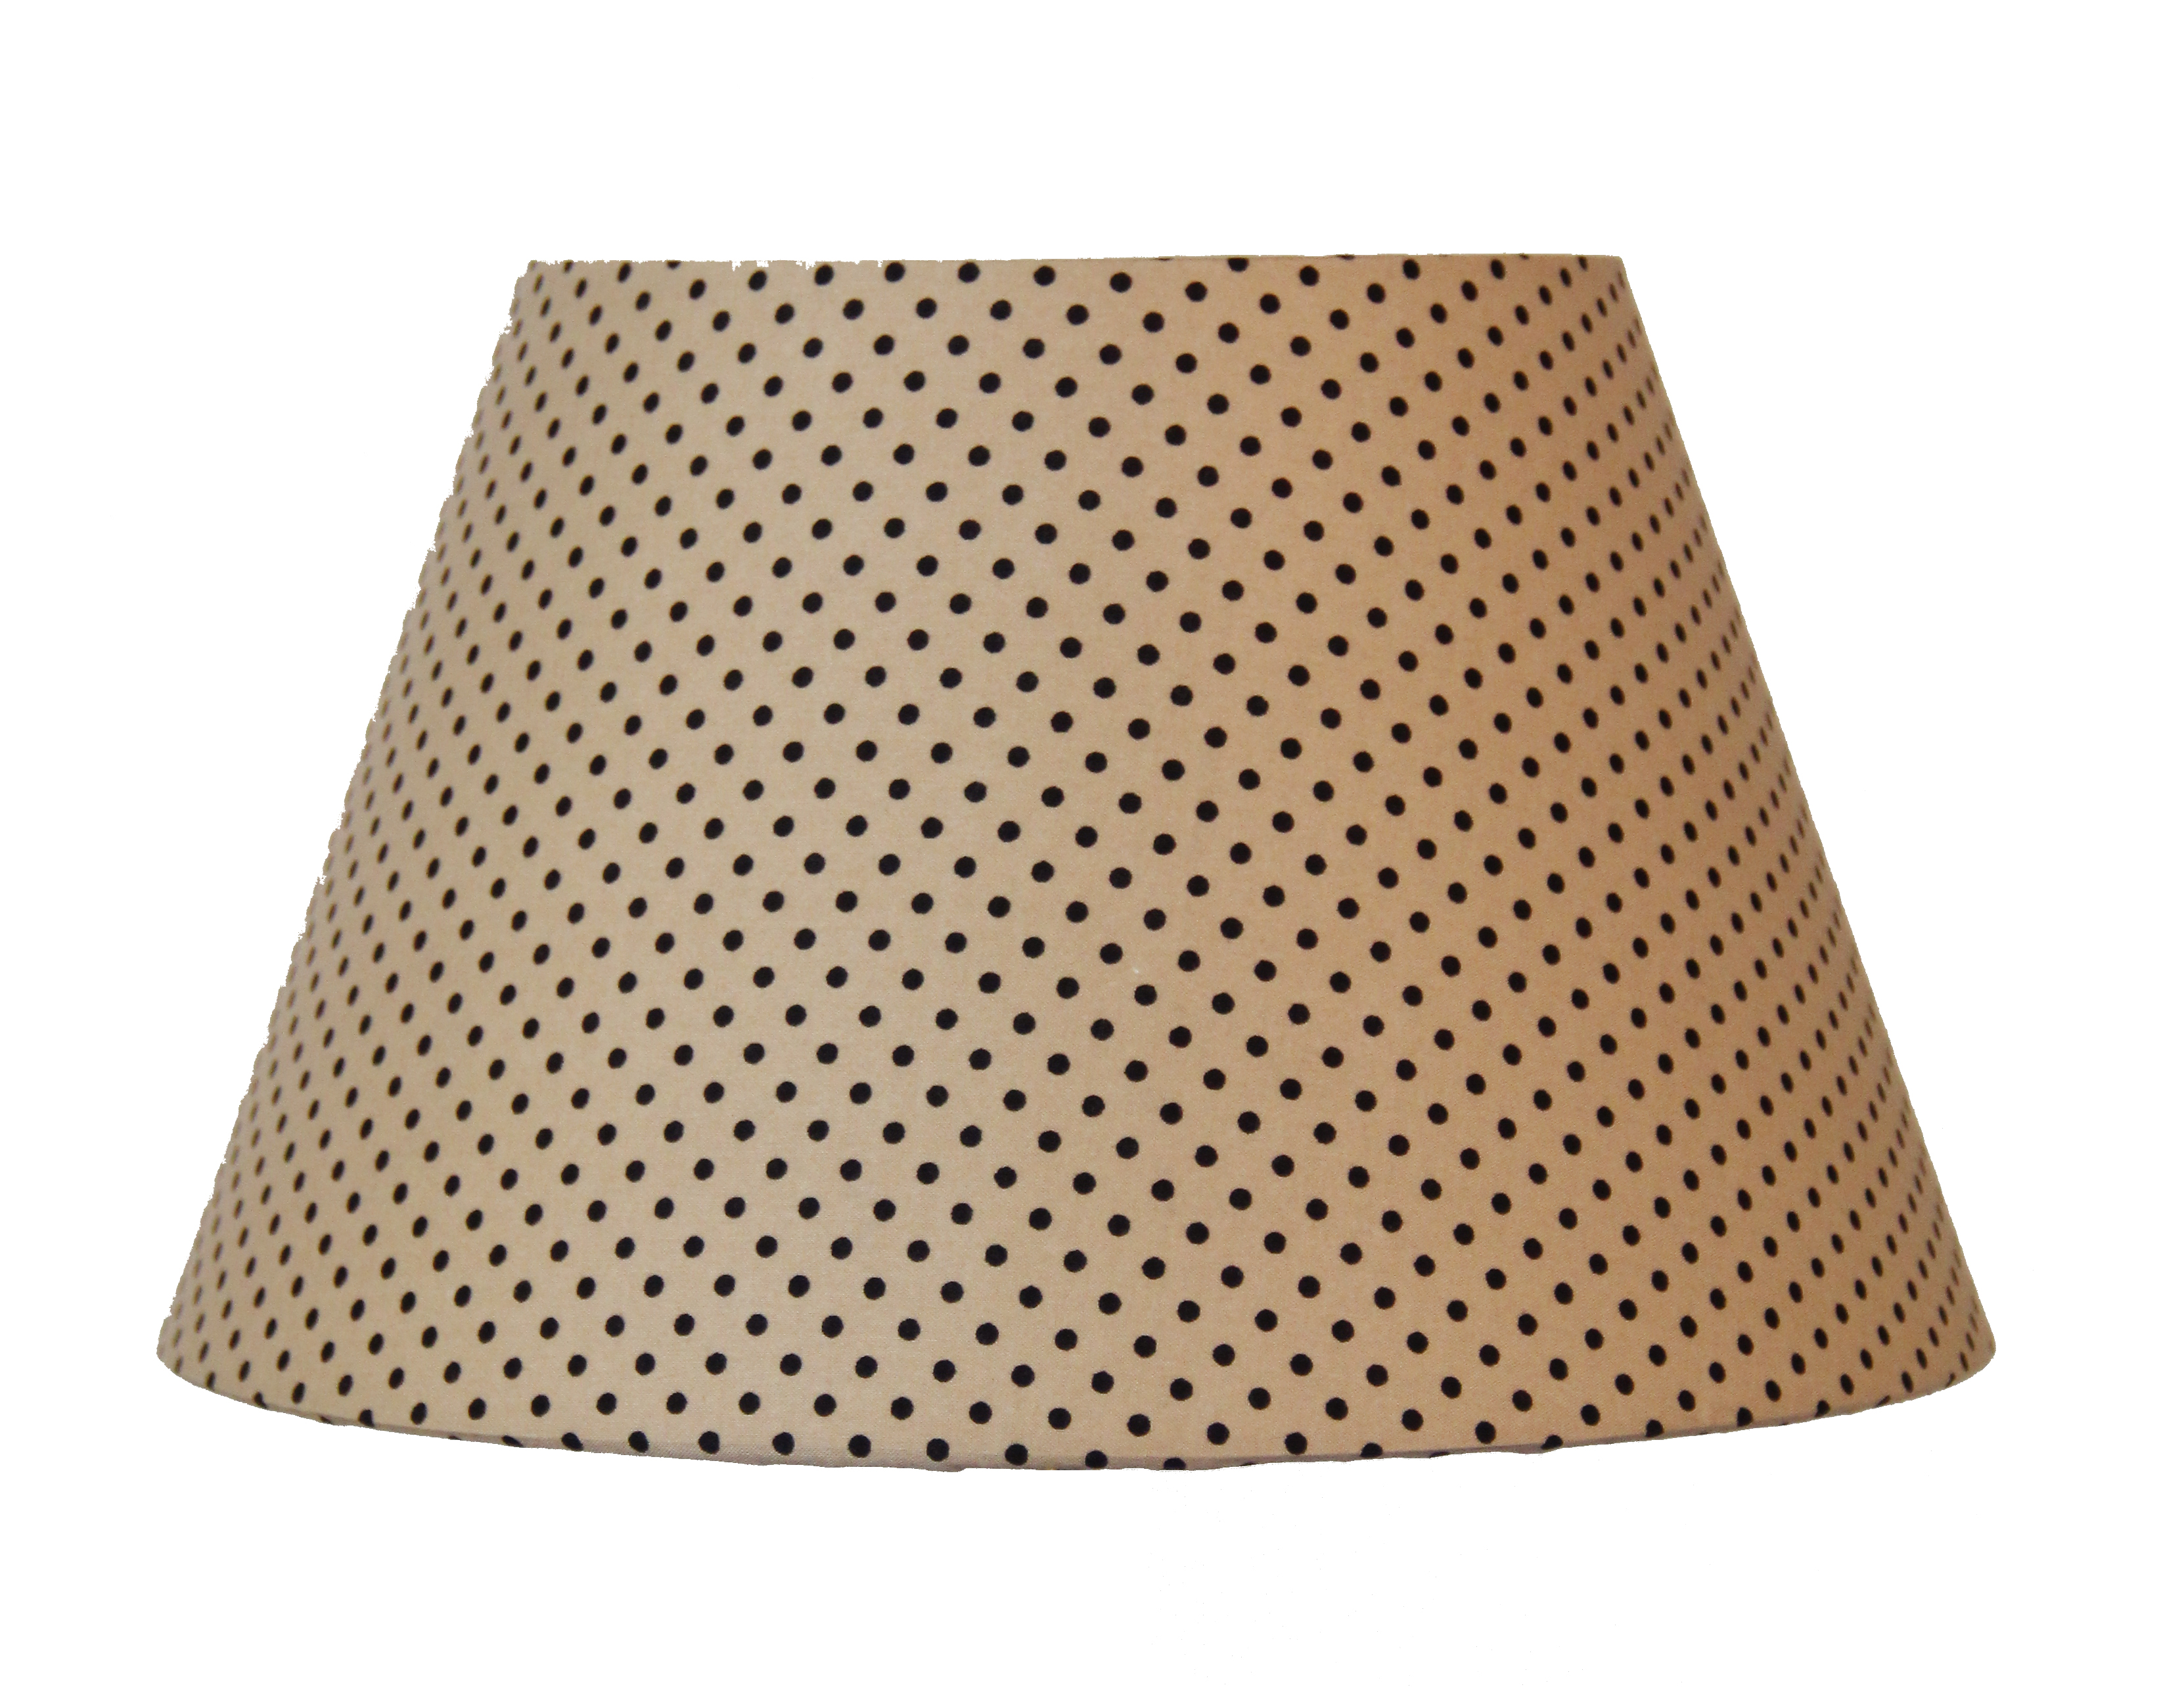 Абажур Lamplandia 7801-2 beige with black dots